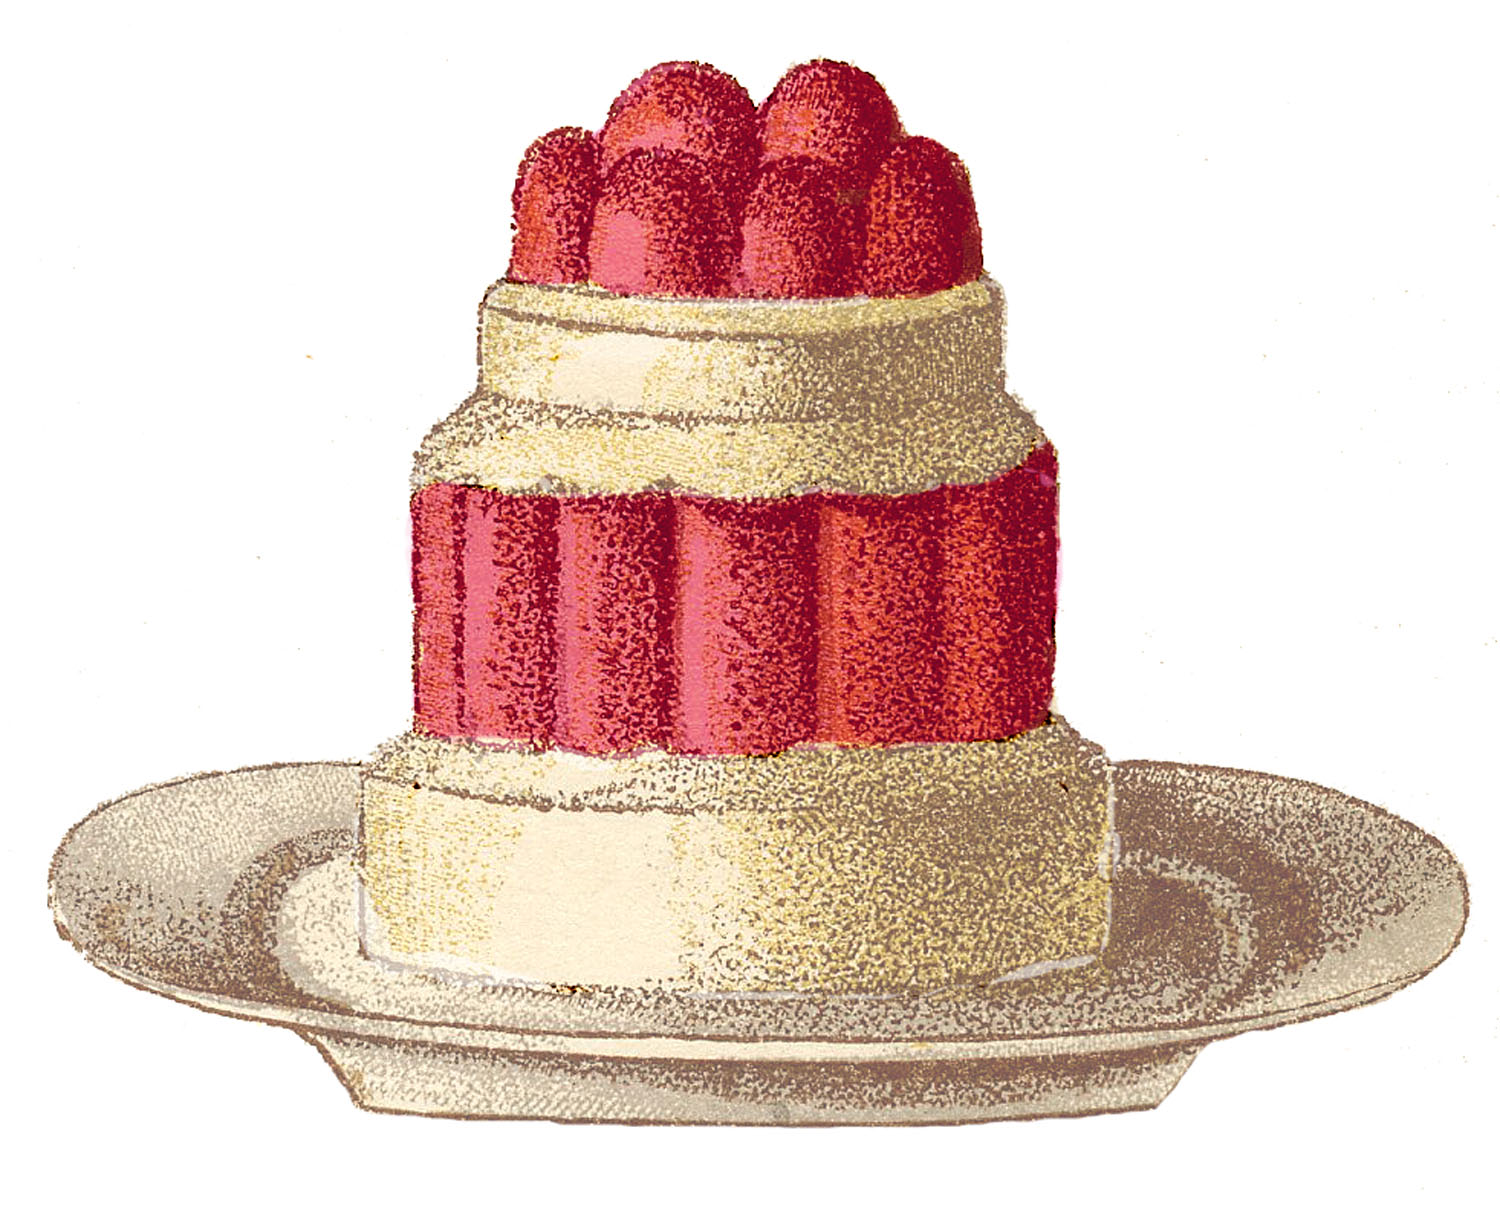 Clip art french the. Desserts clipart vintage